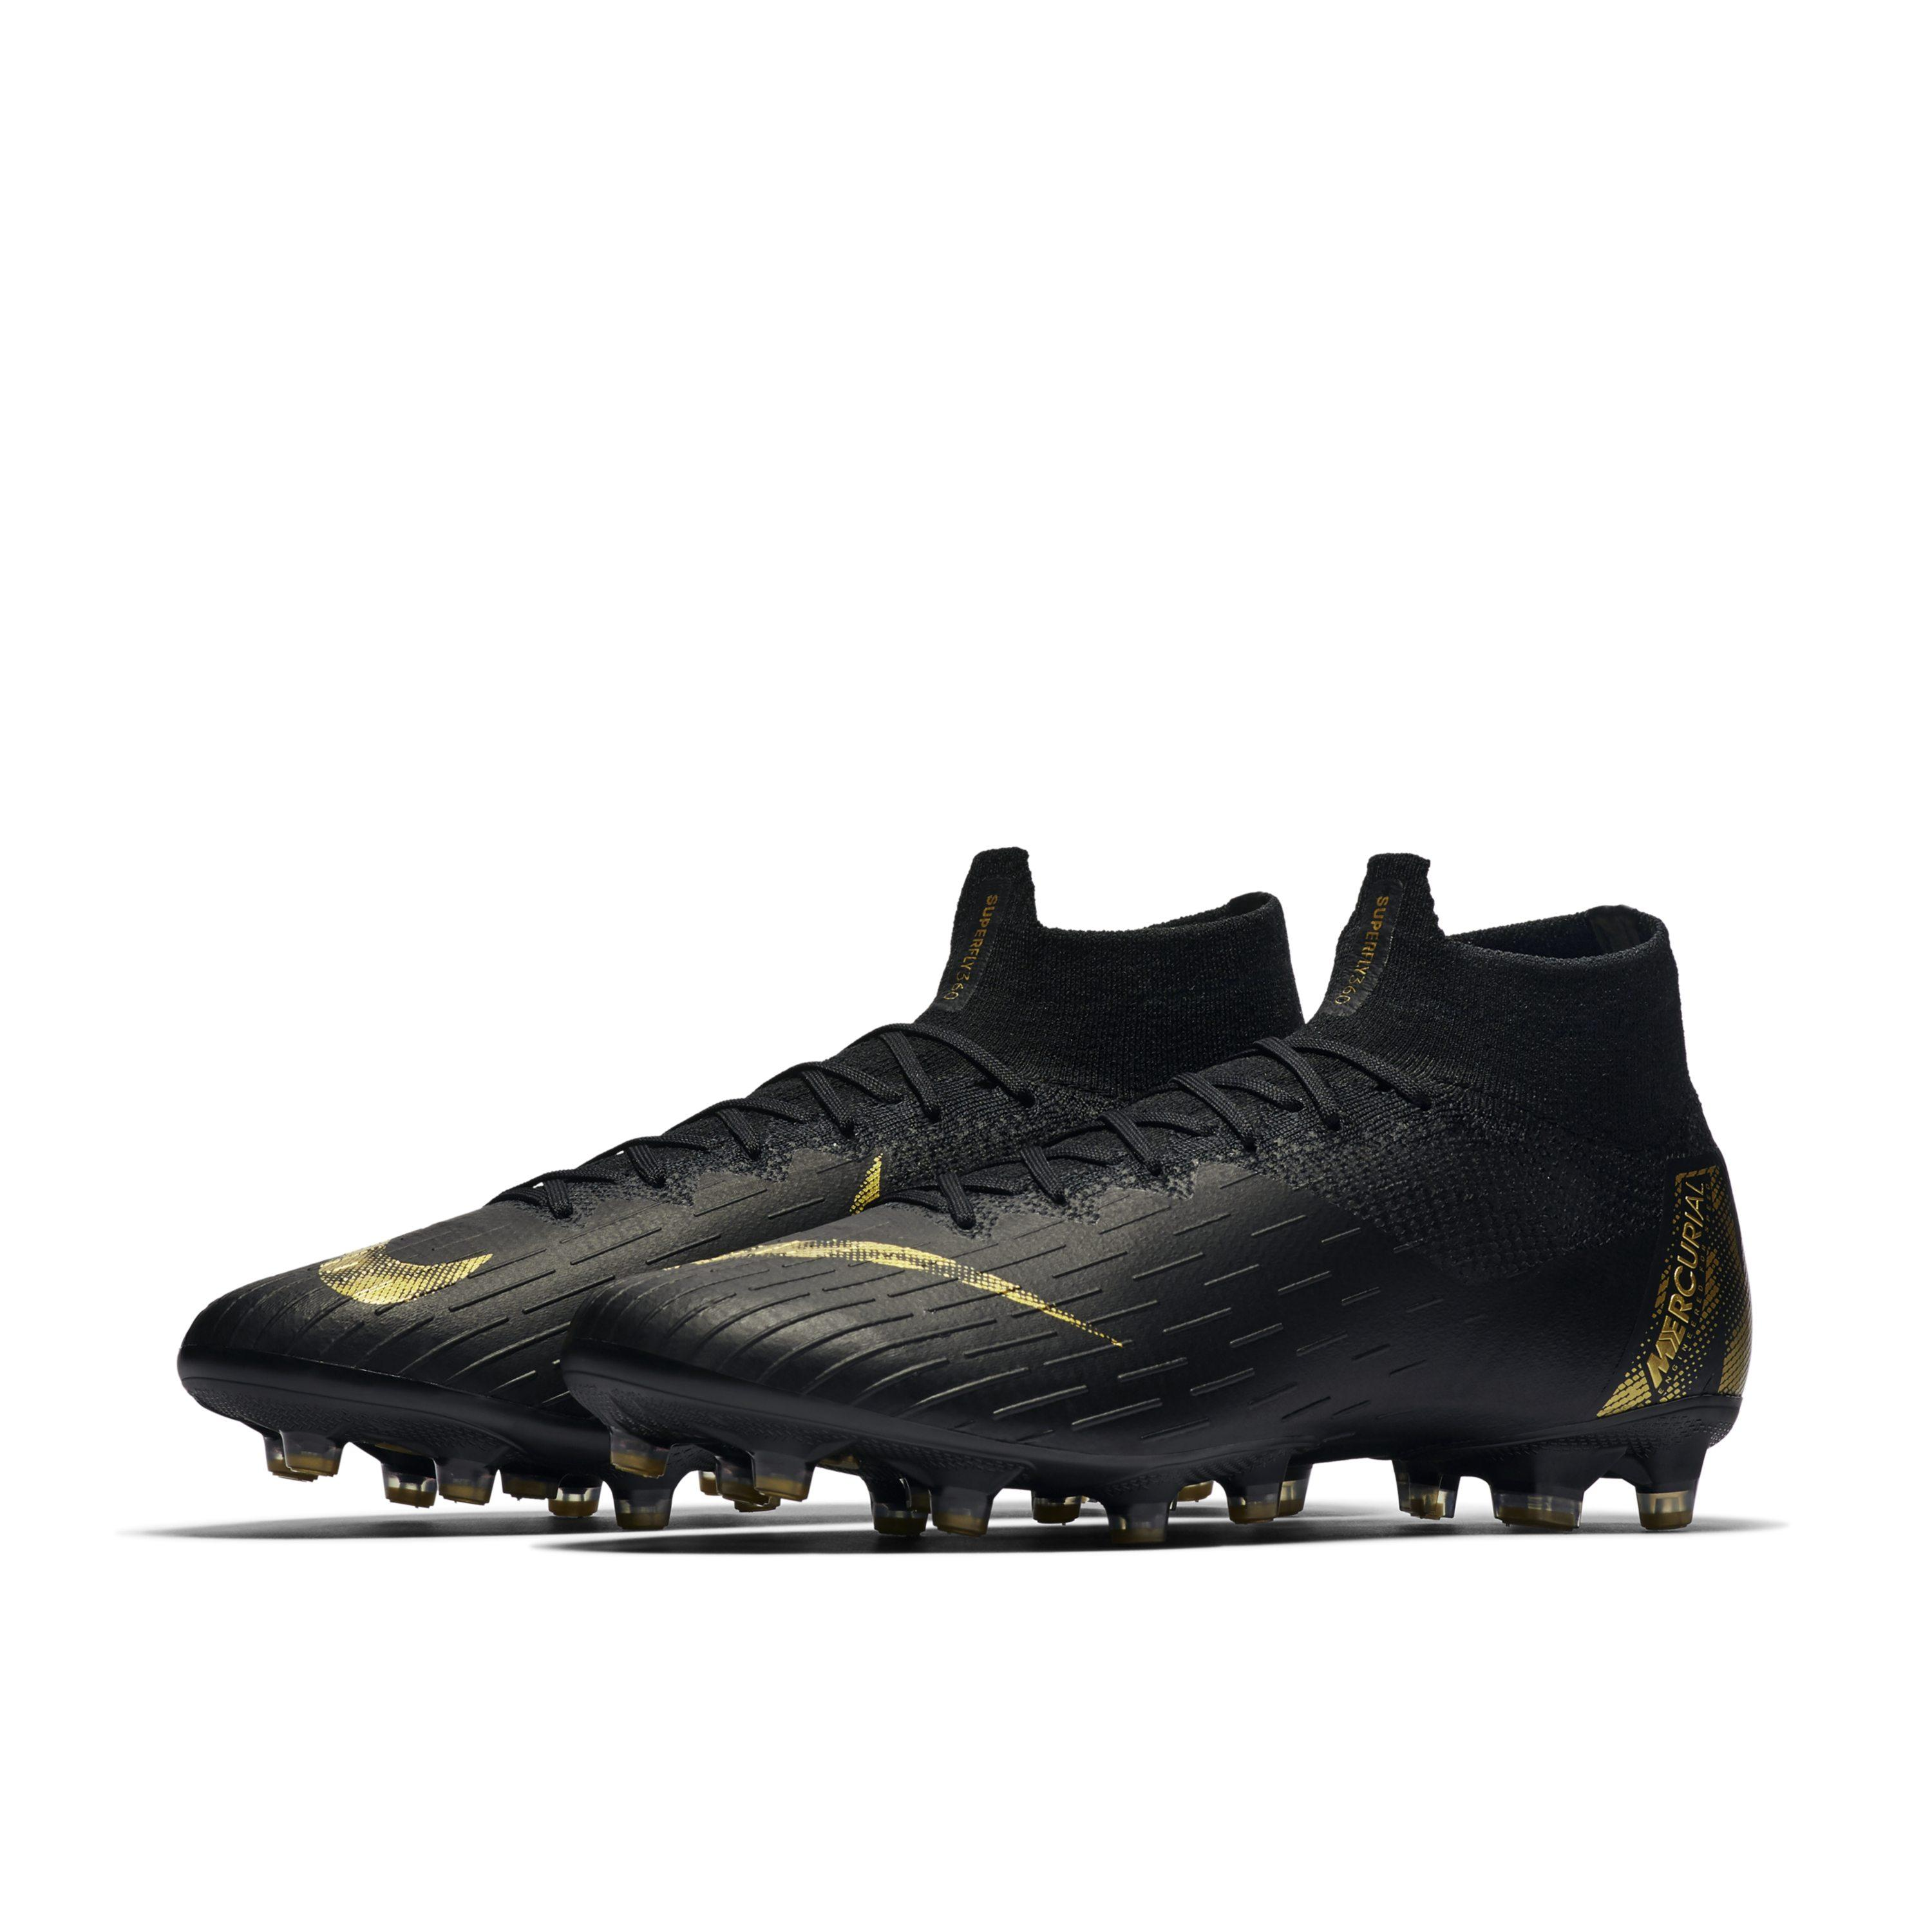 43be7be21b5 Nike - Black Mercurial Superfly 360 Elite Ag-pro Artificial-grass Football  Boot for. View fullscreen